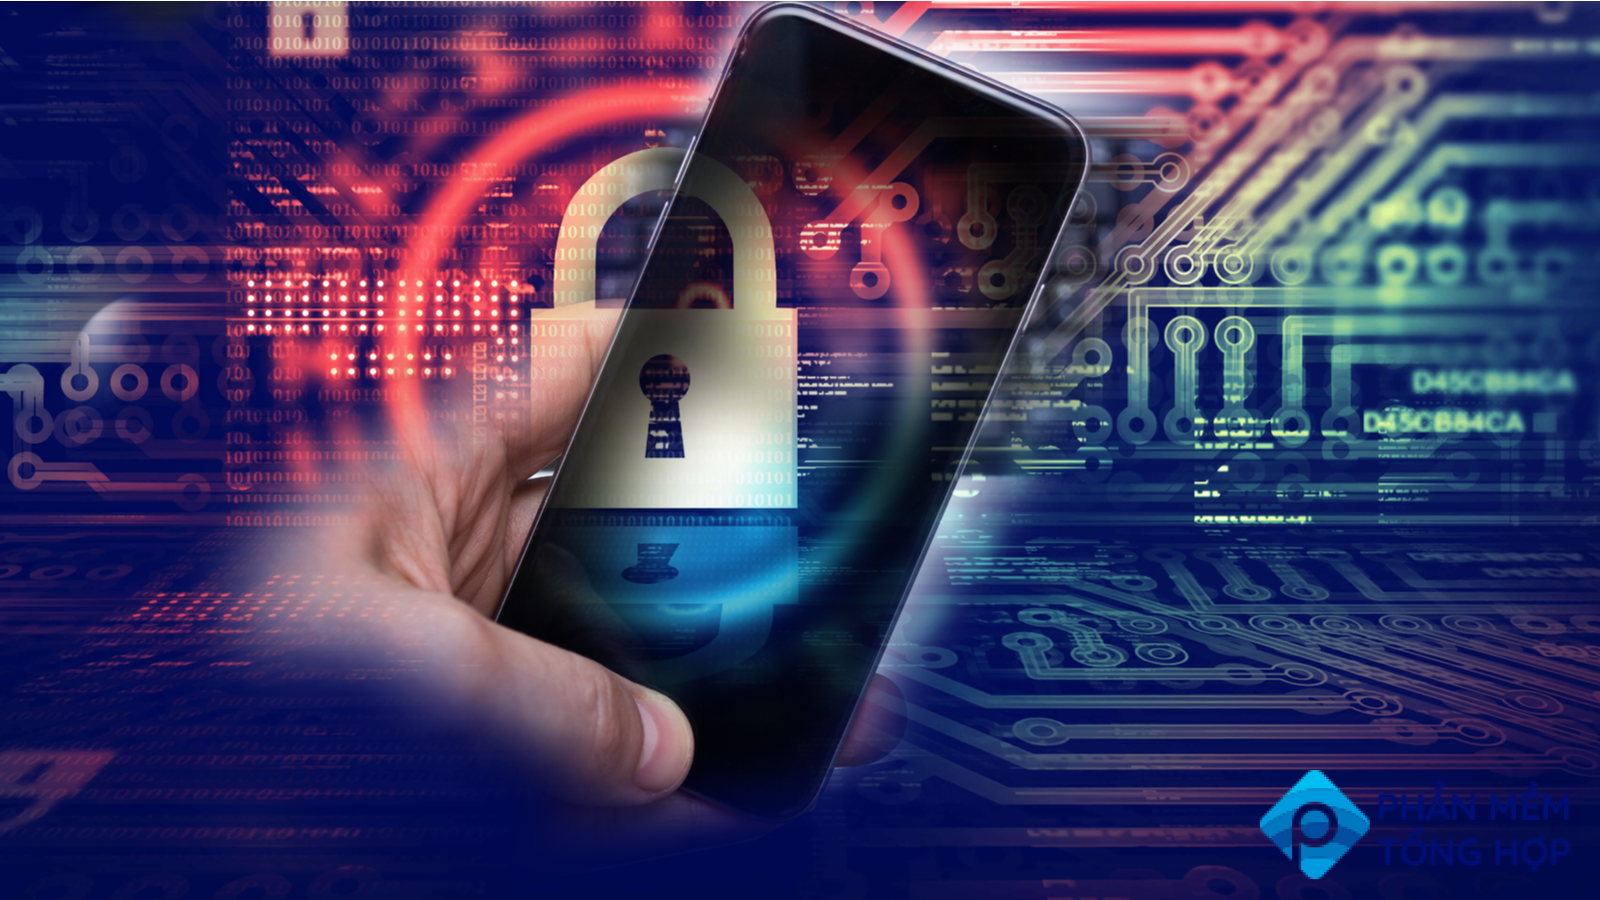 Protecting information in mobile devices, hacking mobile devices by hackers